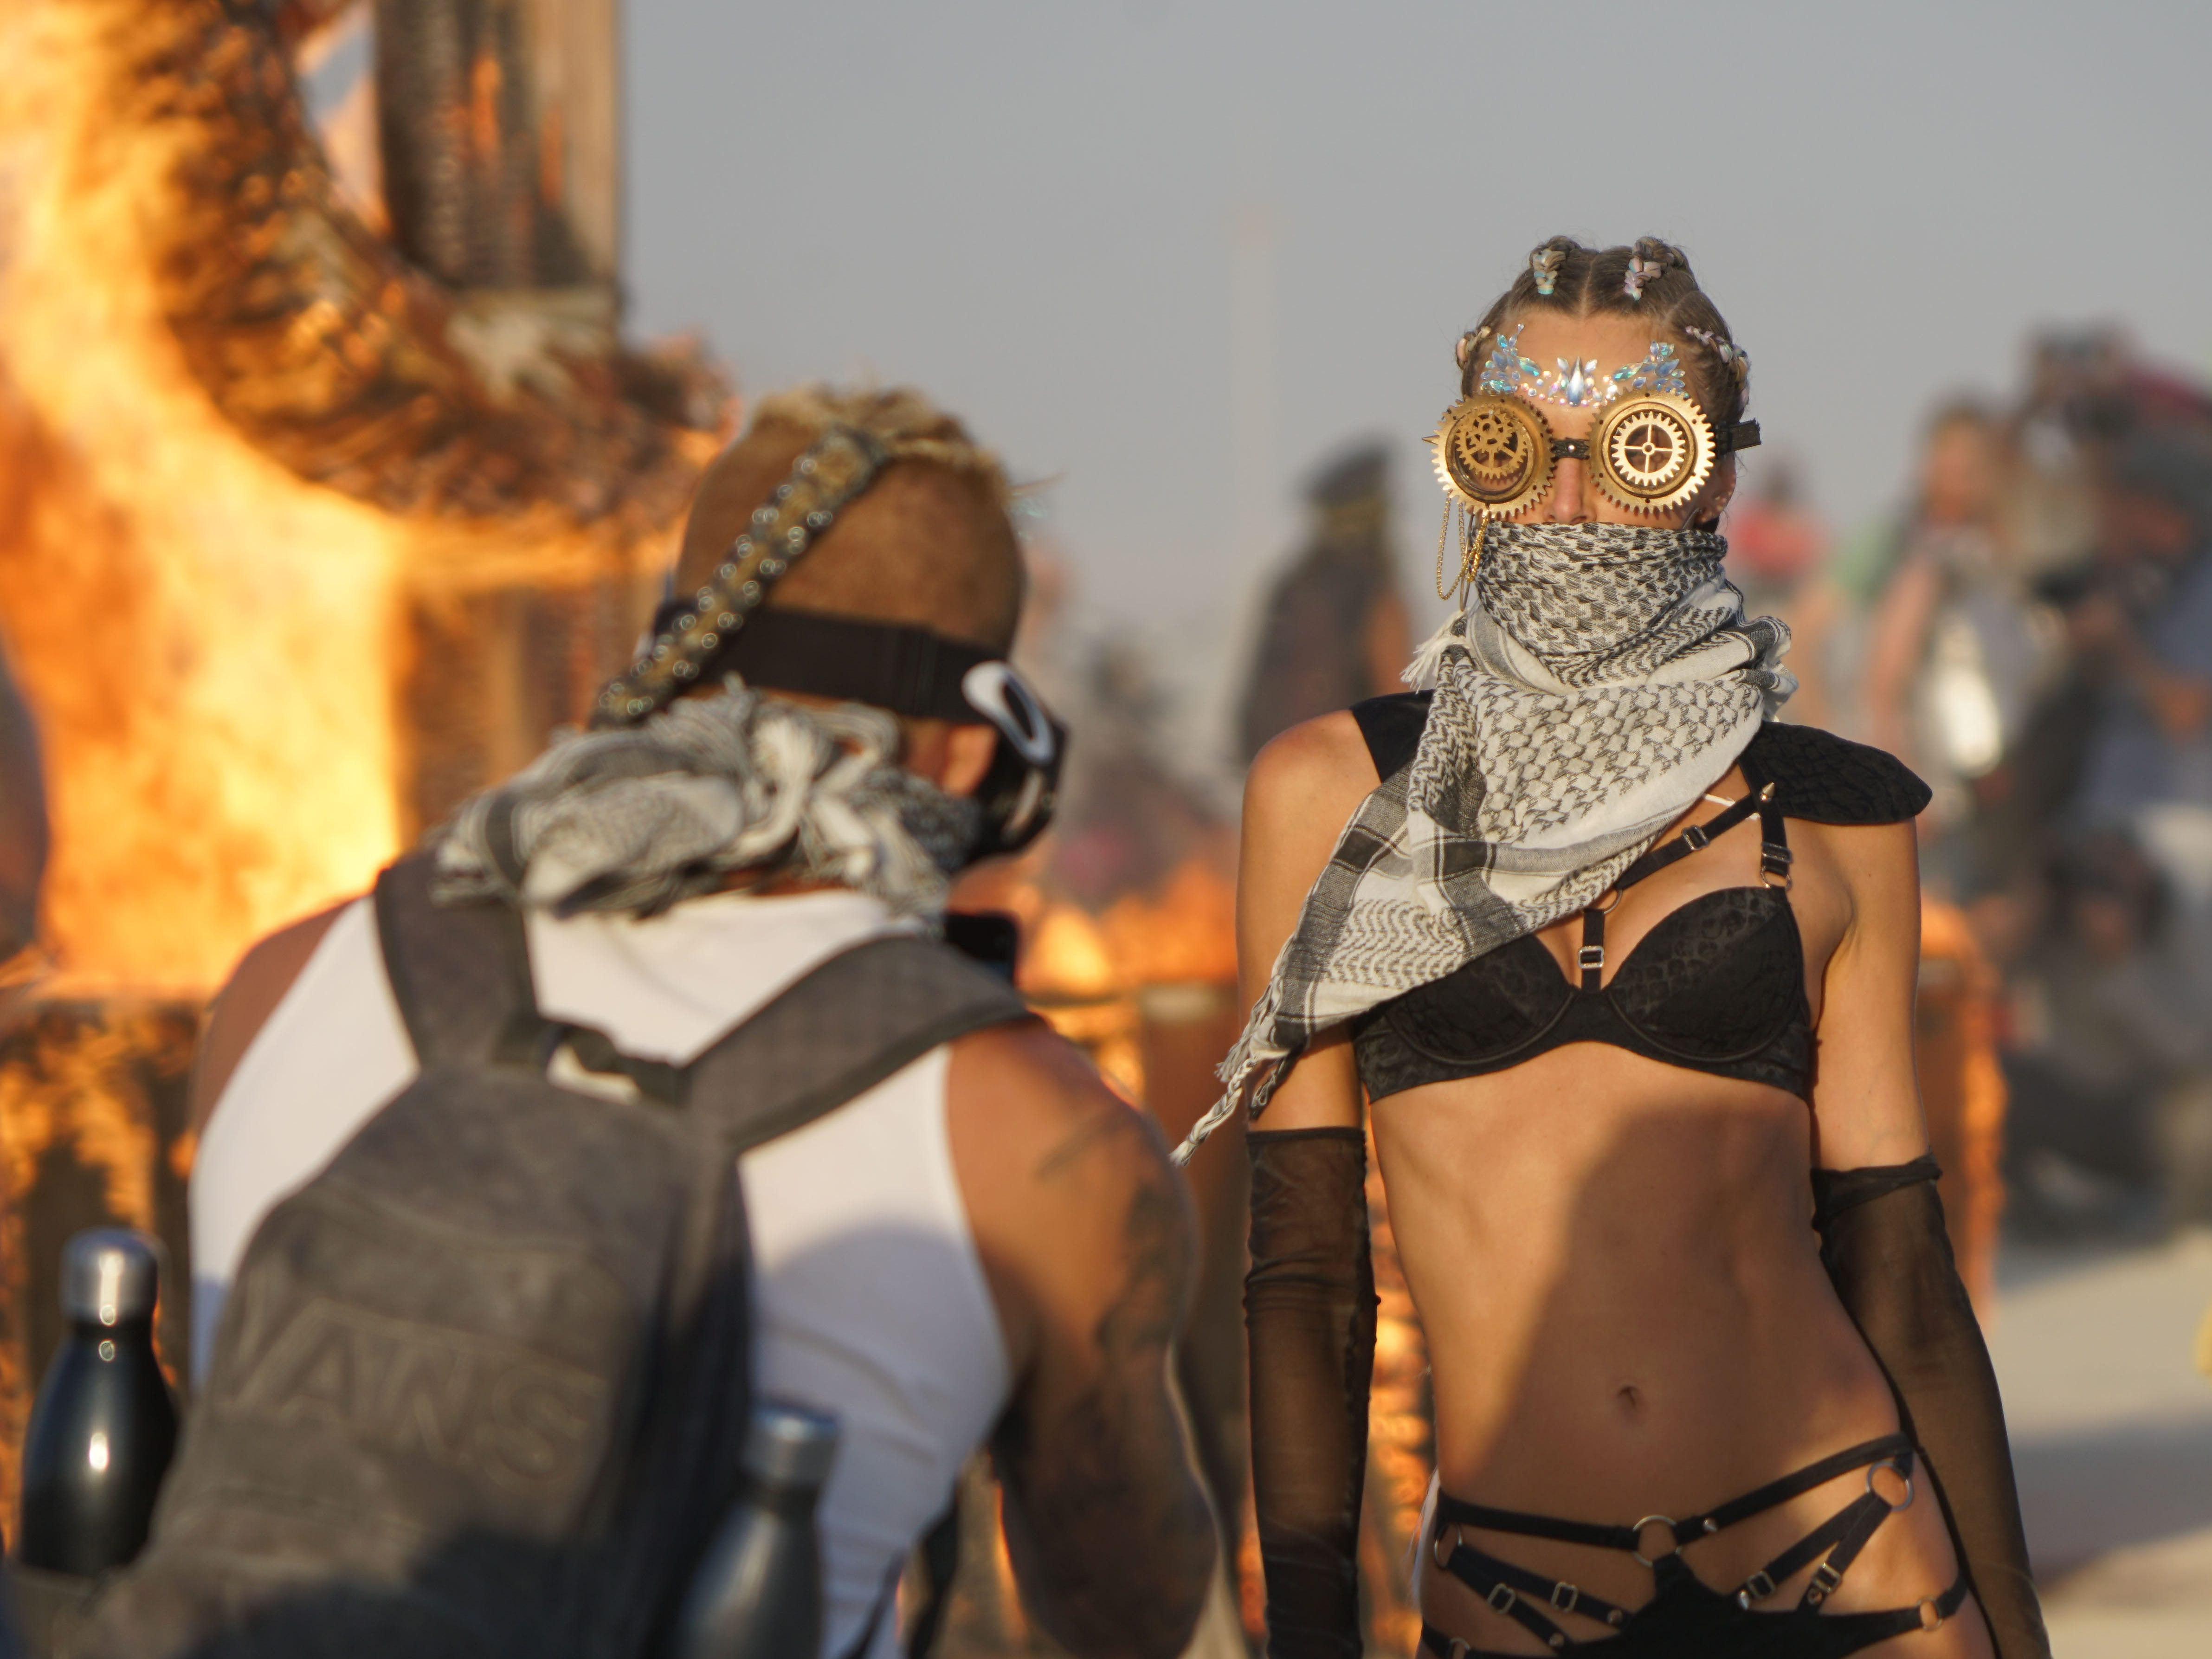 Los Angles-based model, designer and Instagram influencer Ludi Delfino poses for a photo taken by Eric Chambers in front of a burning sculpture at Burning Man Aug 31, 2018.